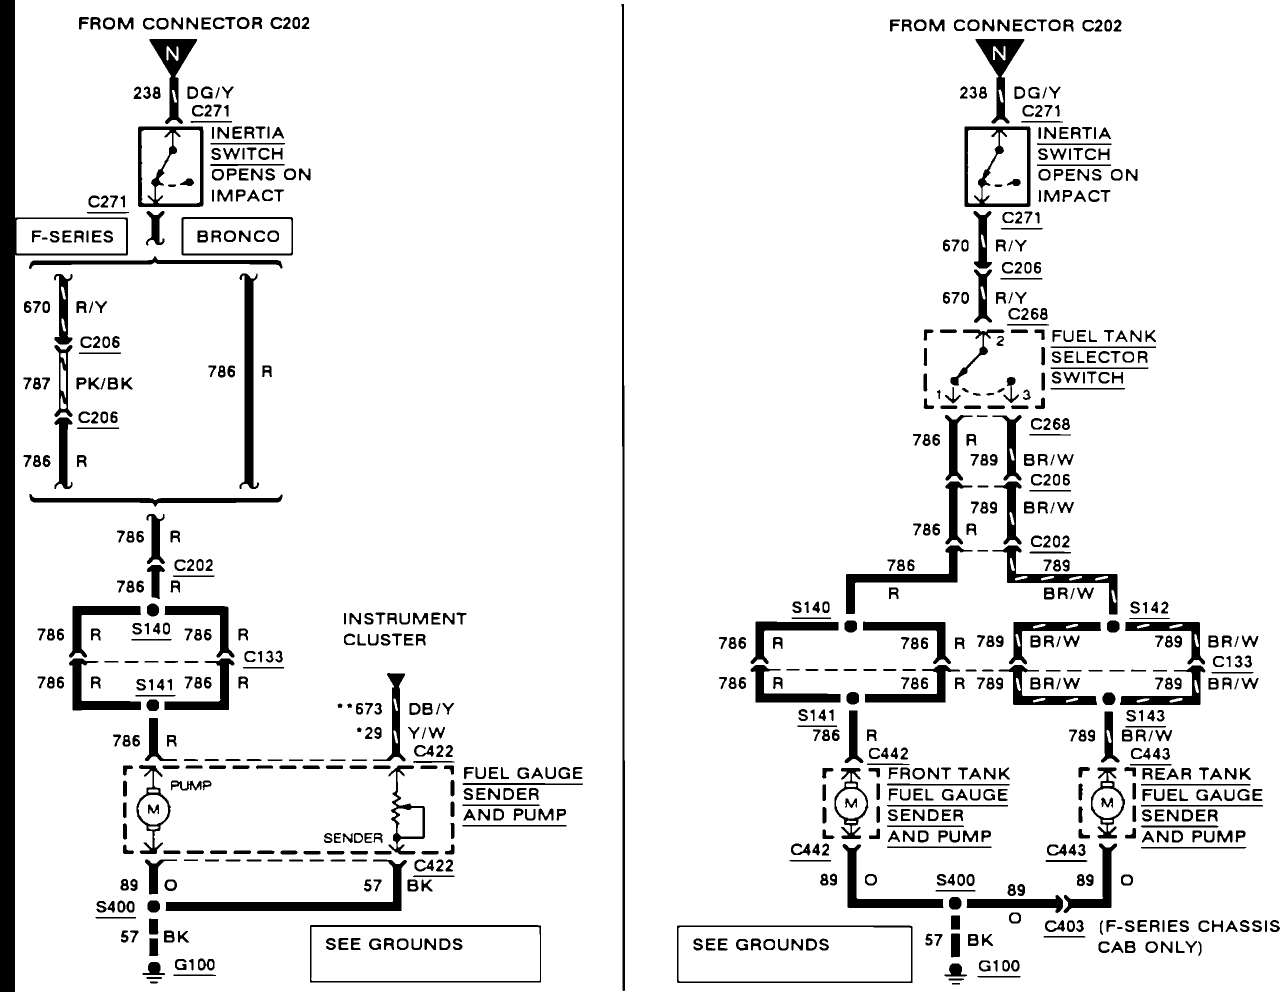 Ford Fuel Tank Selector Switch Wiring Diagram from wholefoodsonabudget.com